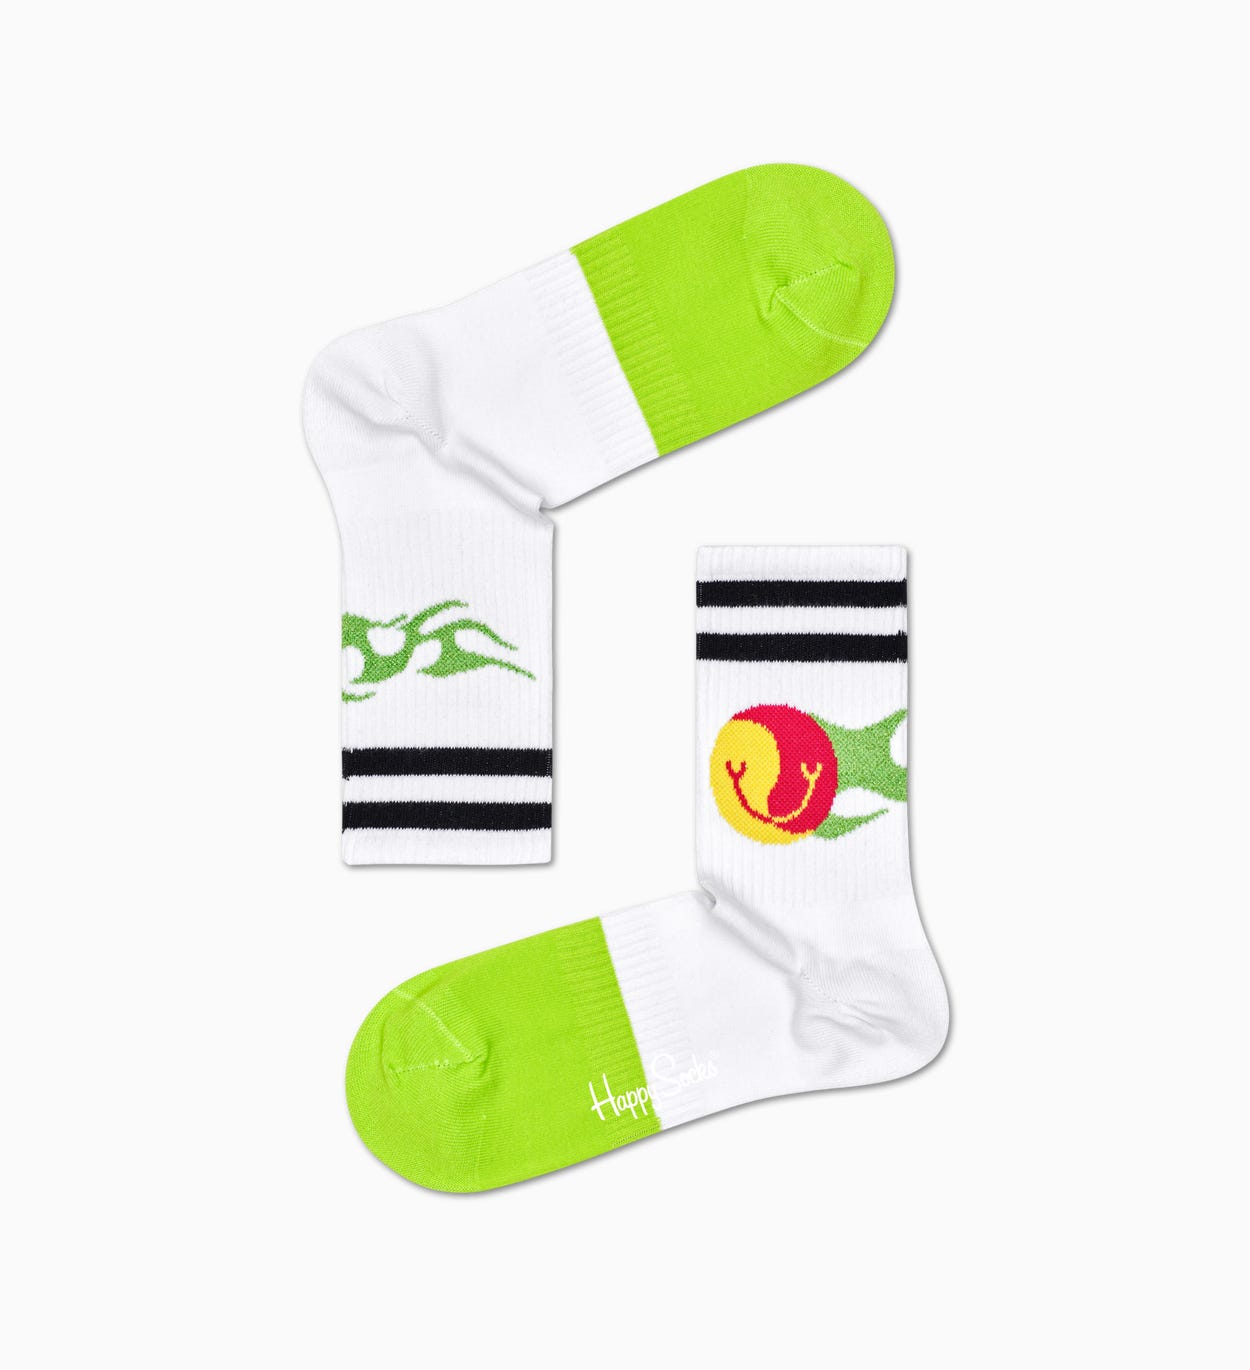 Flame 3/4 Crew strømper, hvid - ATHLETIC | Happy Socks